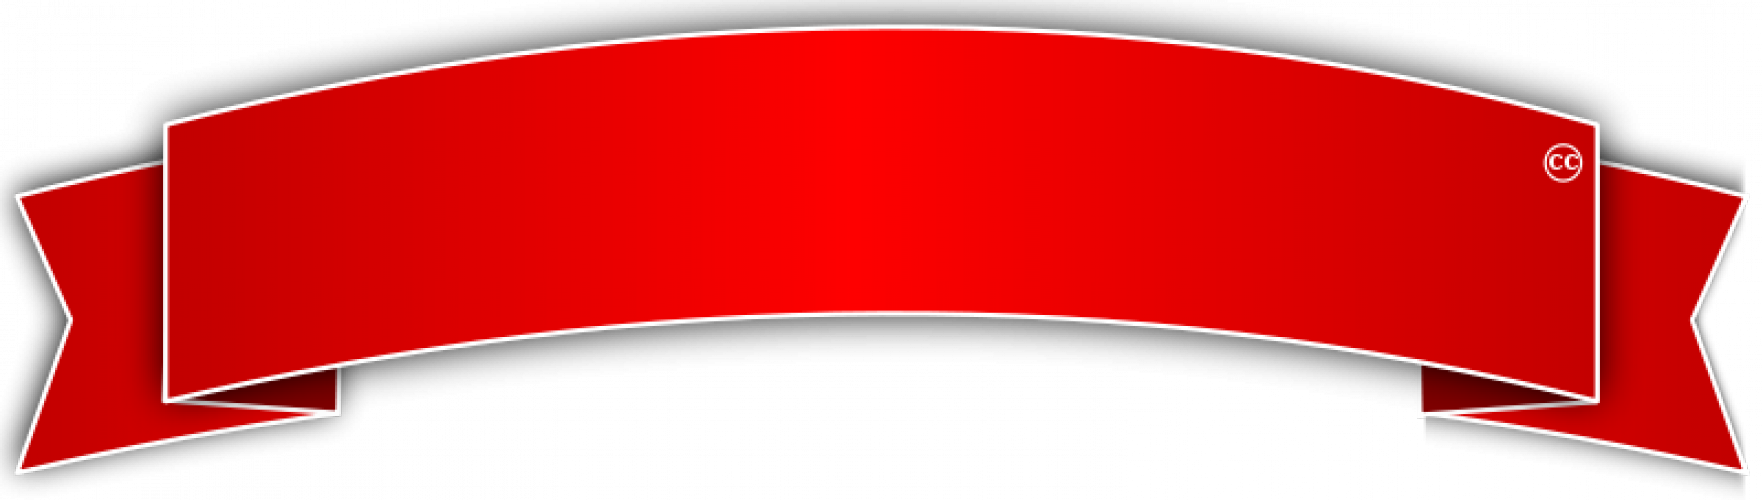 Red ribbon banner png. Clipart clip art images